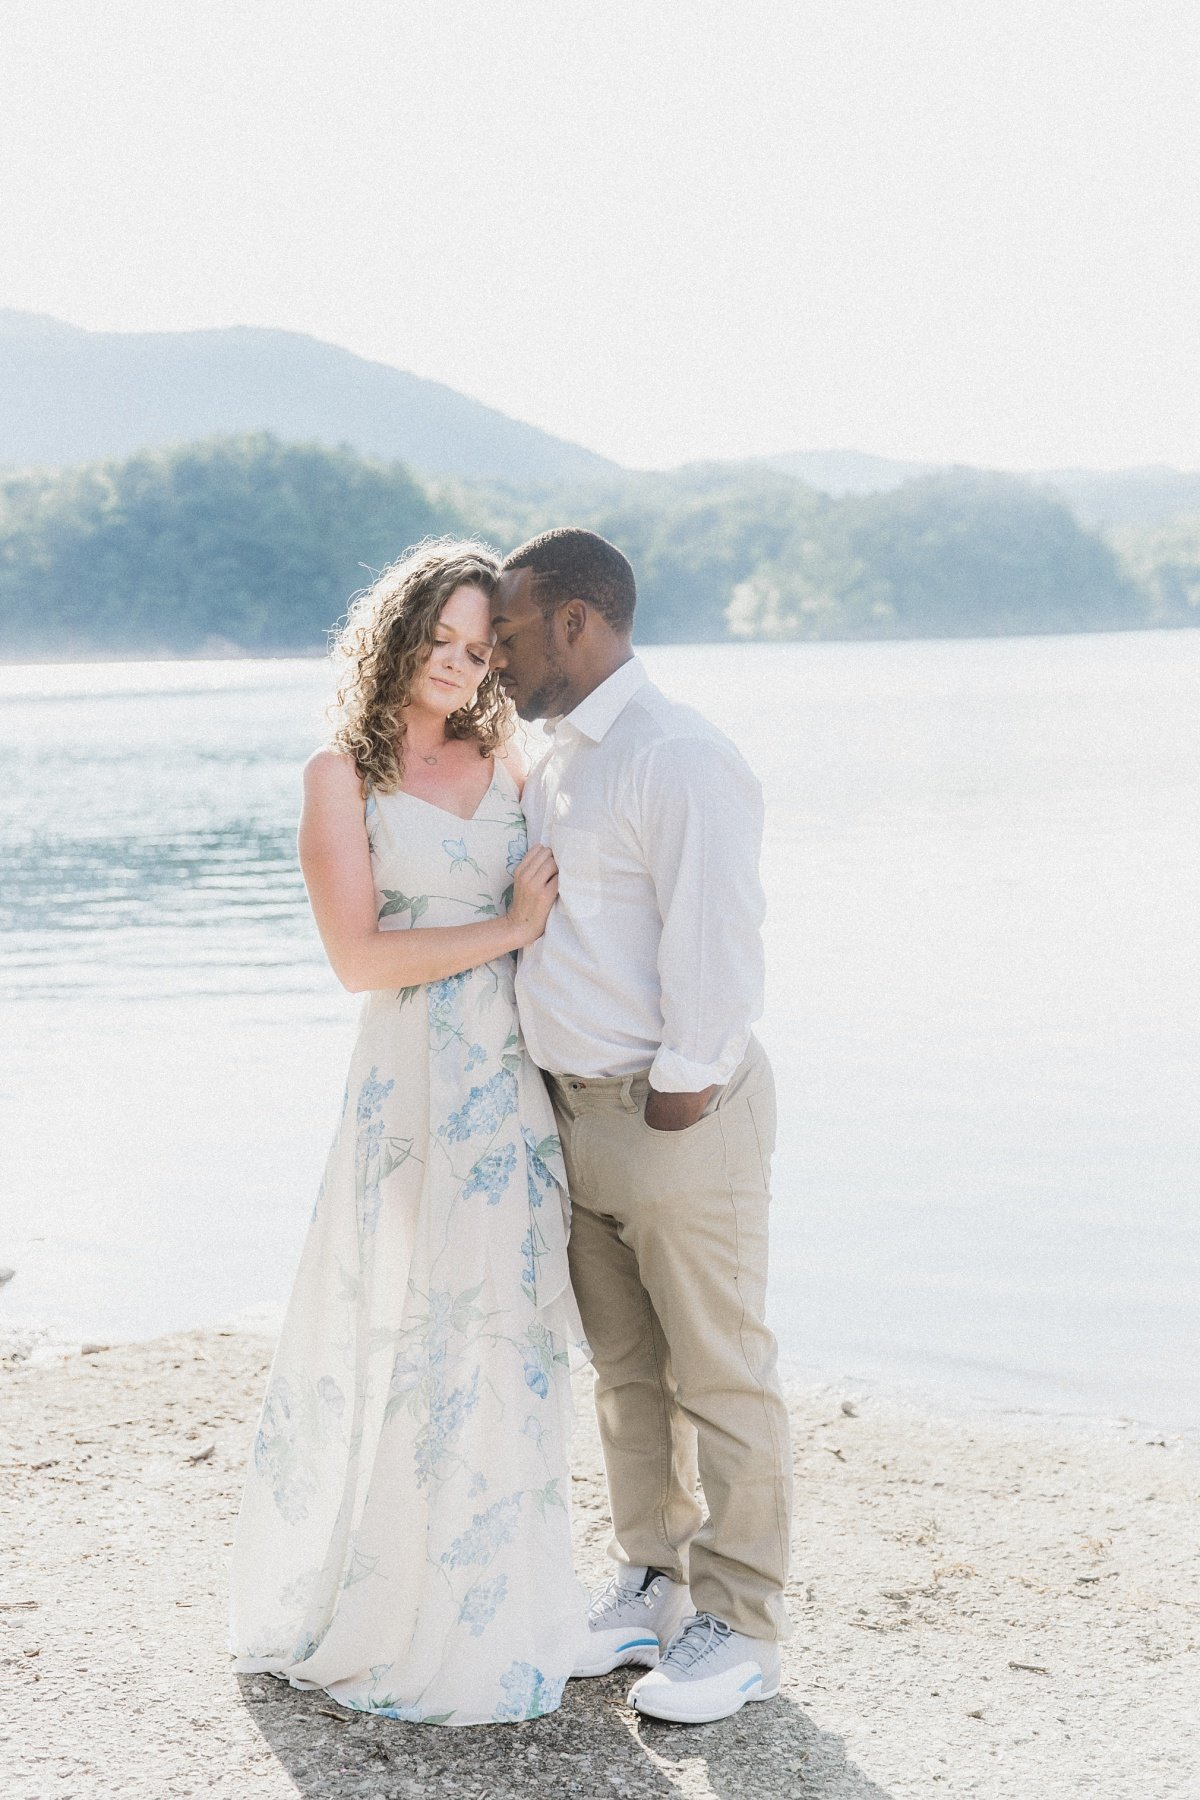 desmond-amanda-carvins-cove-engagement_0001